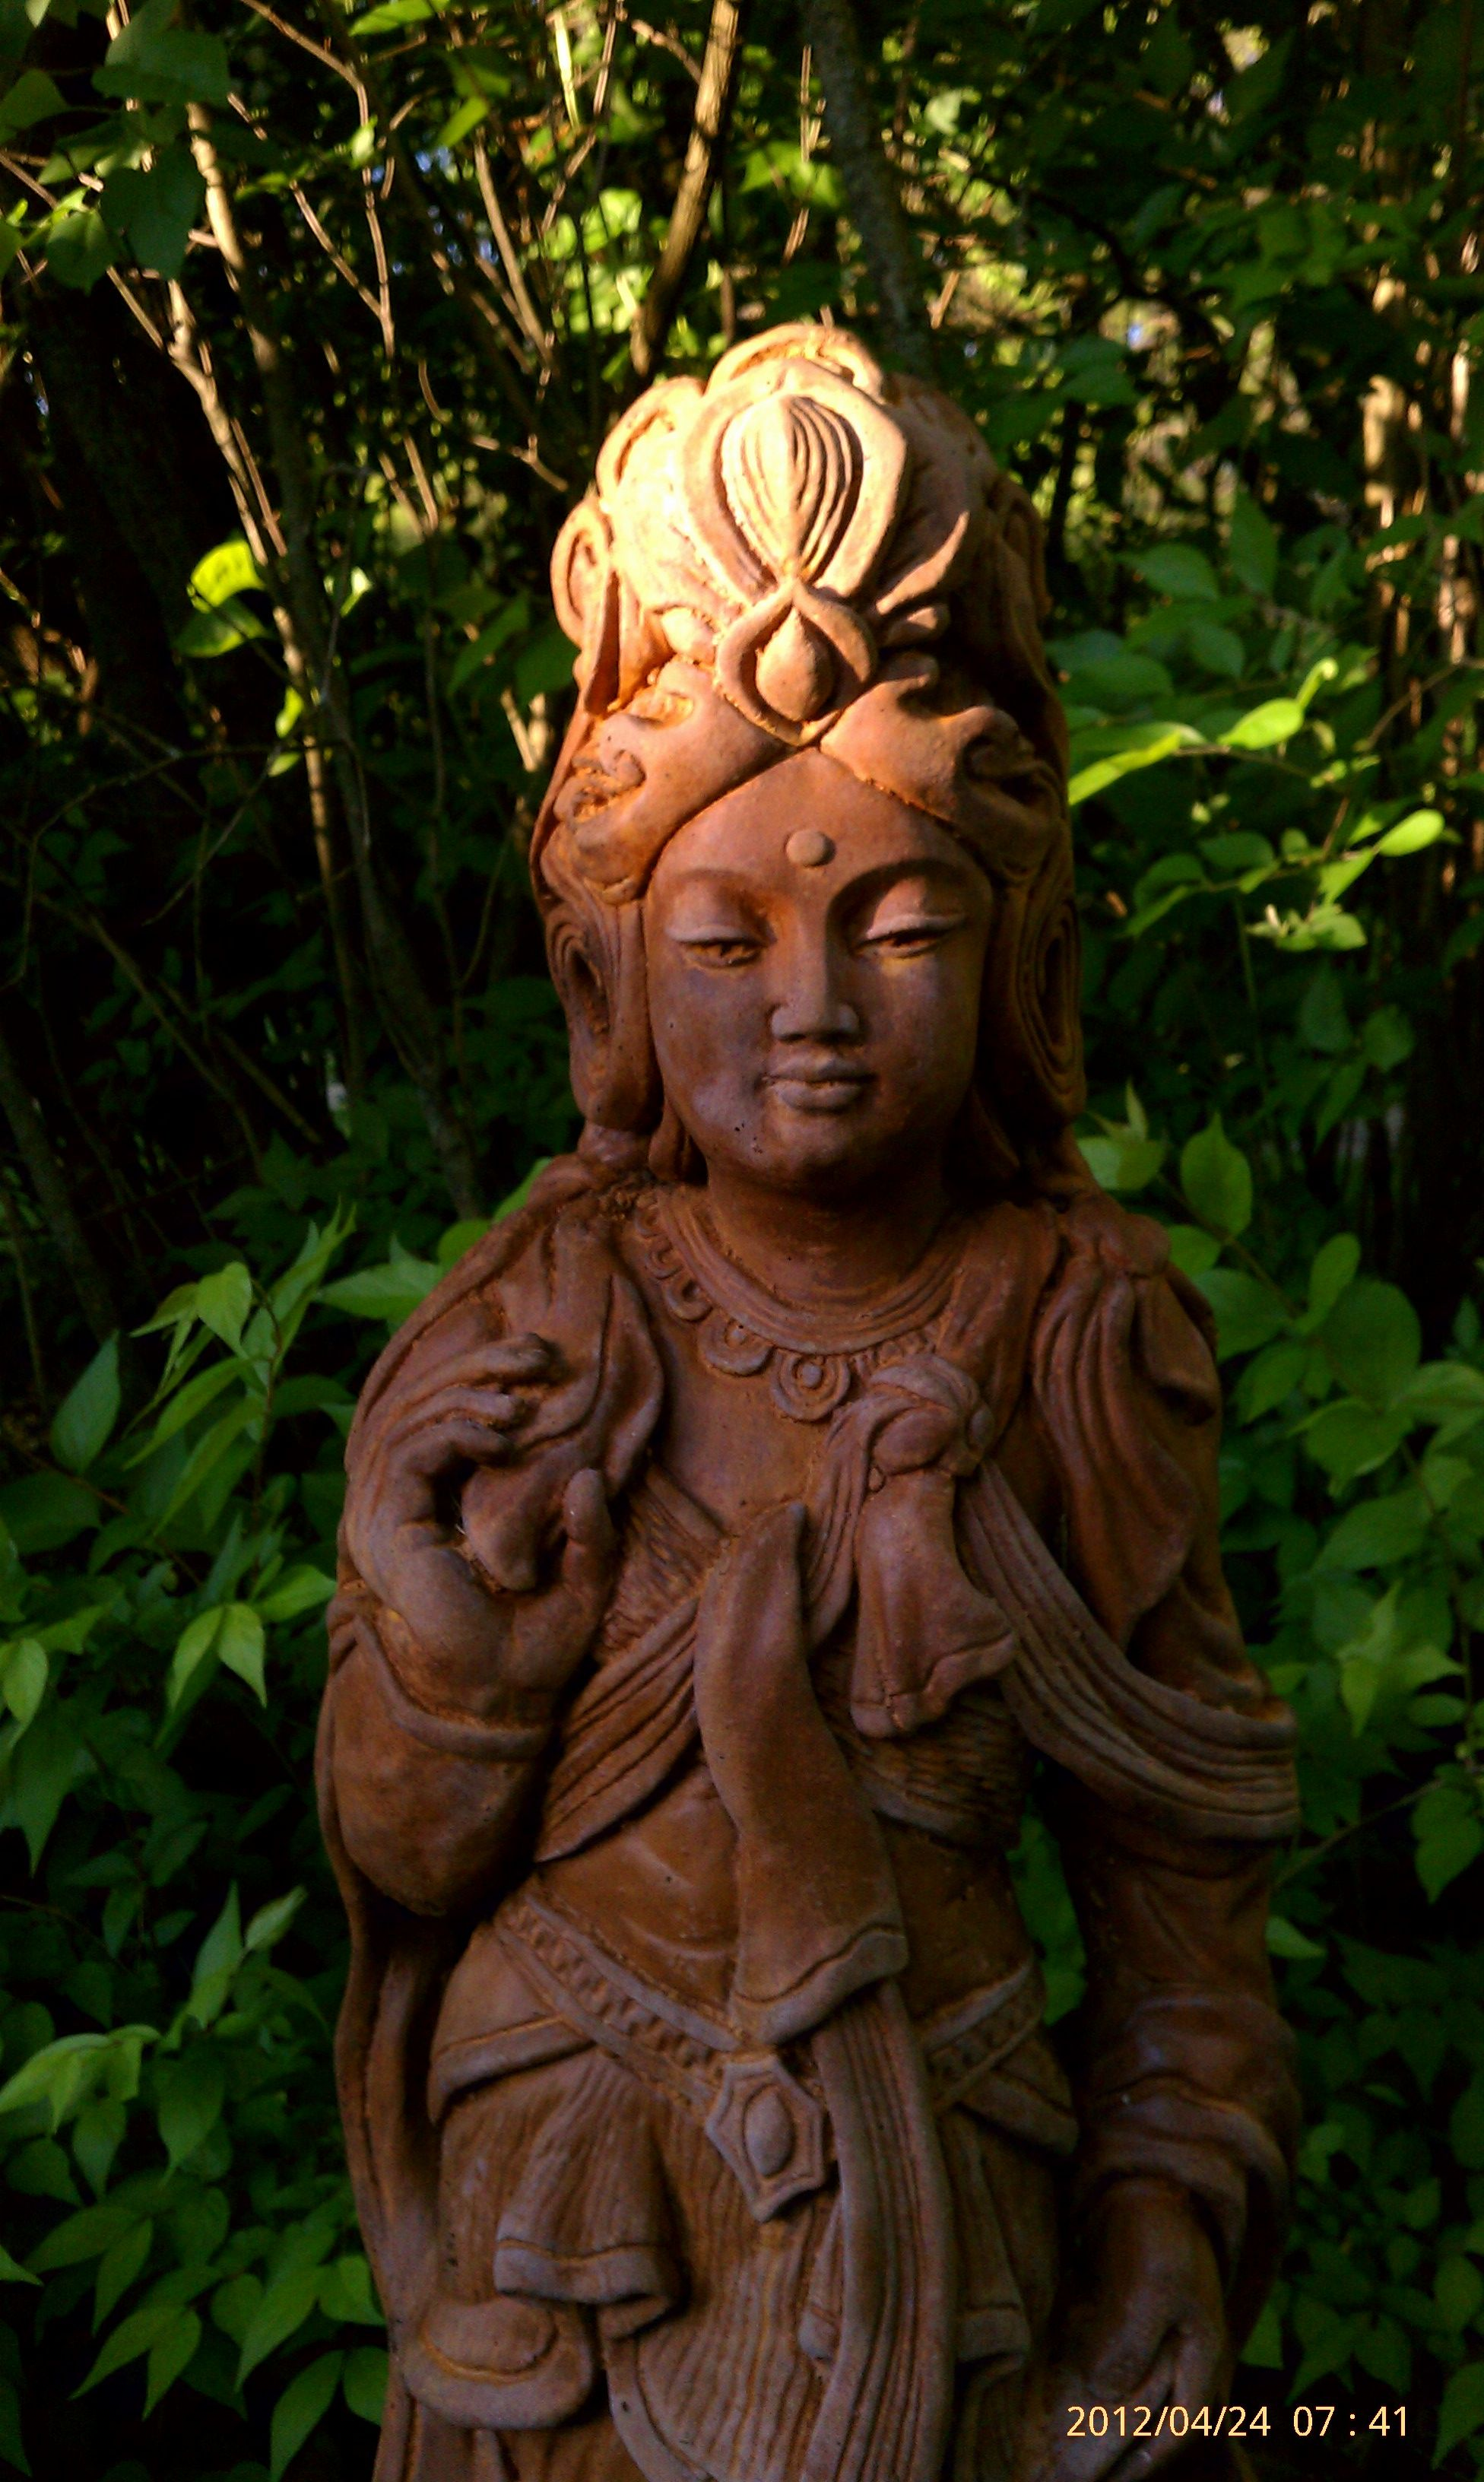 Garden Quan Yin  Her Iconography Is Unusual  Never Seen Her Hair Face